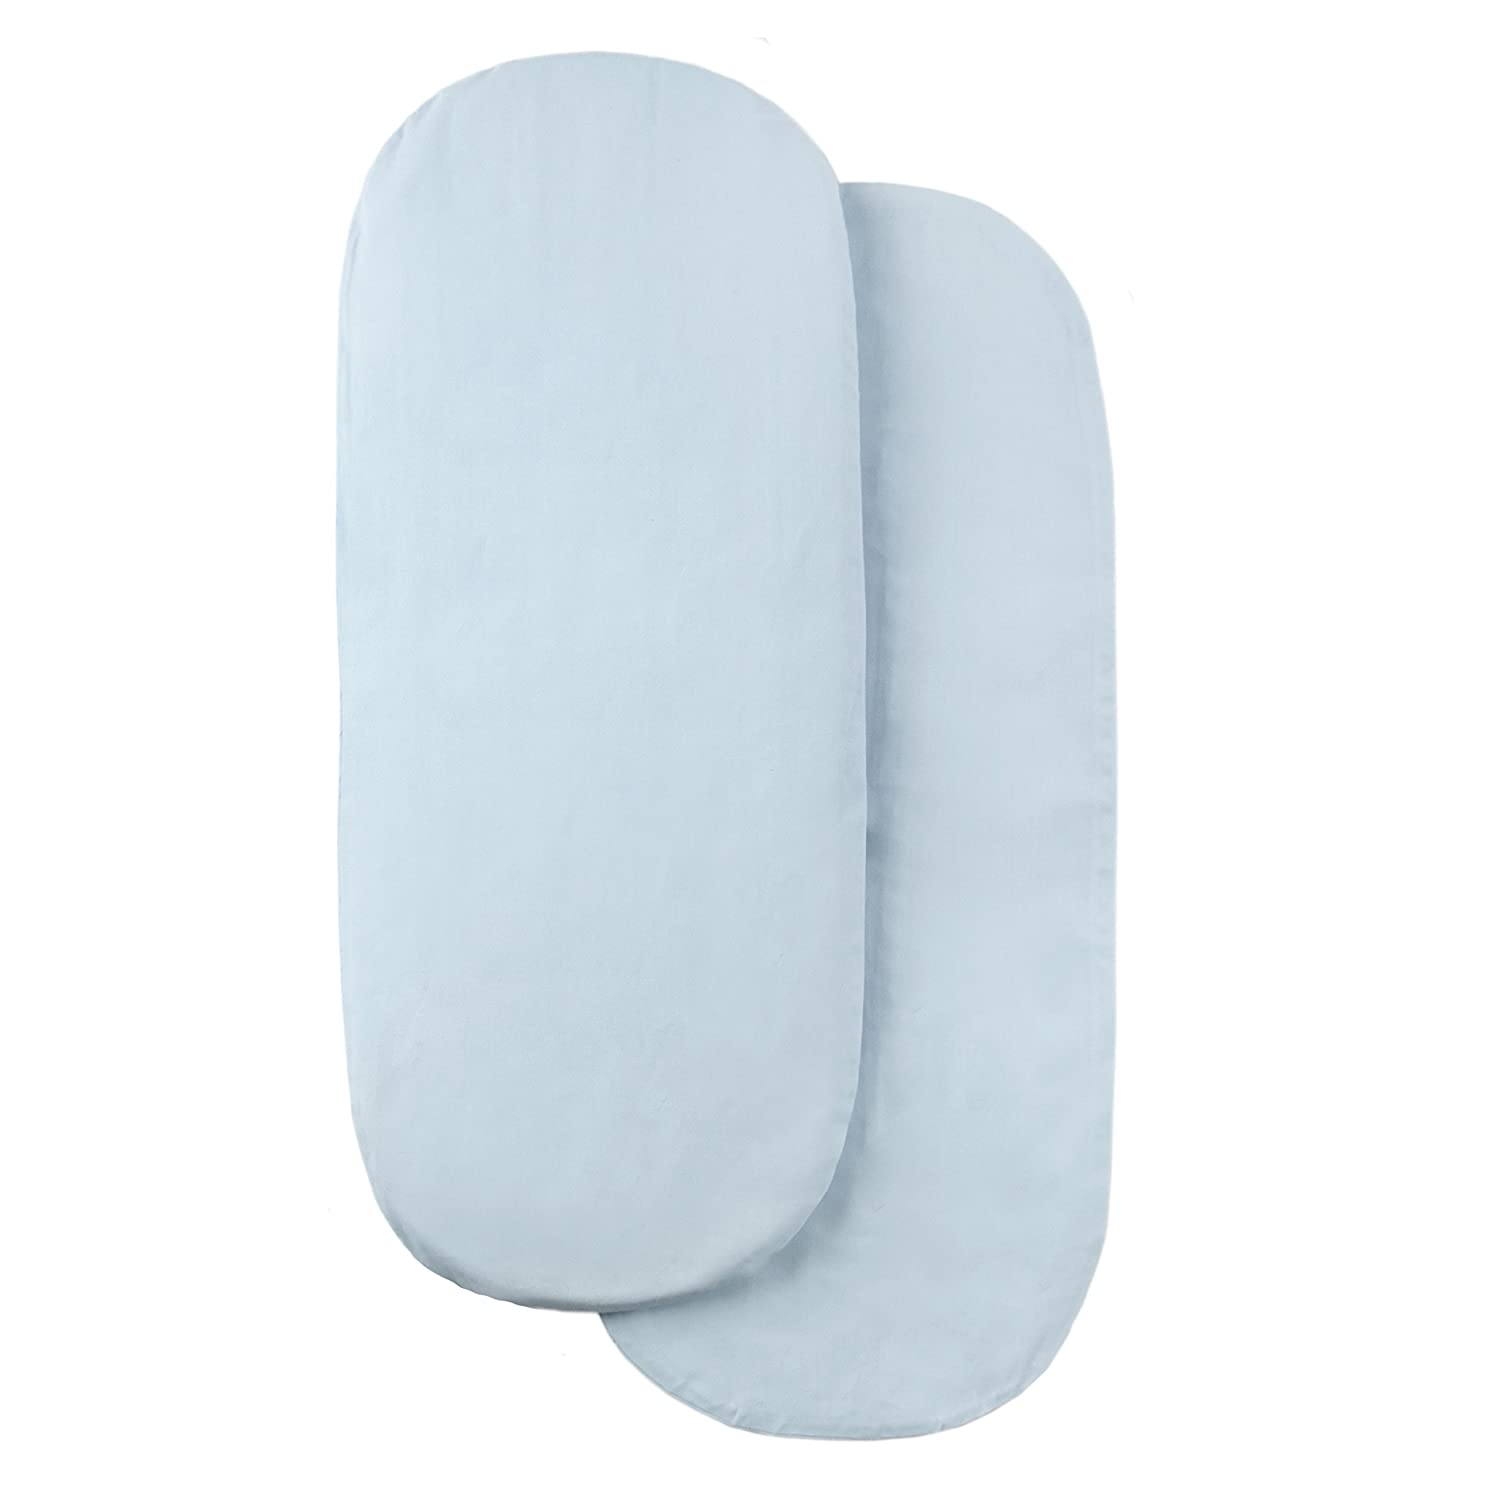 Tadpoles Set of 2 Moses Basket Removable Cotton Covers (Light Blue) Sleeping Partners